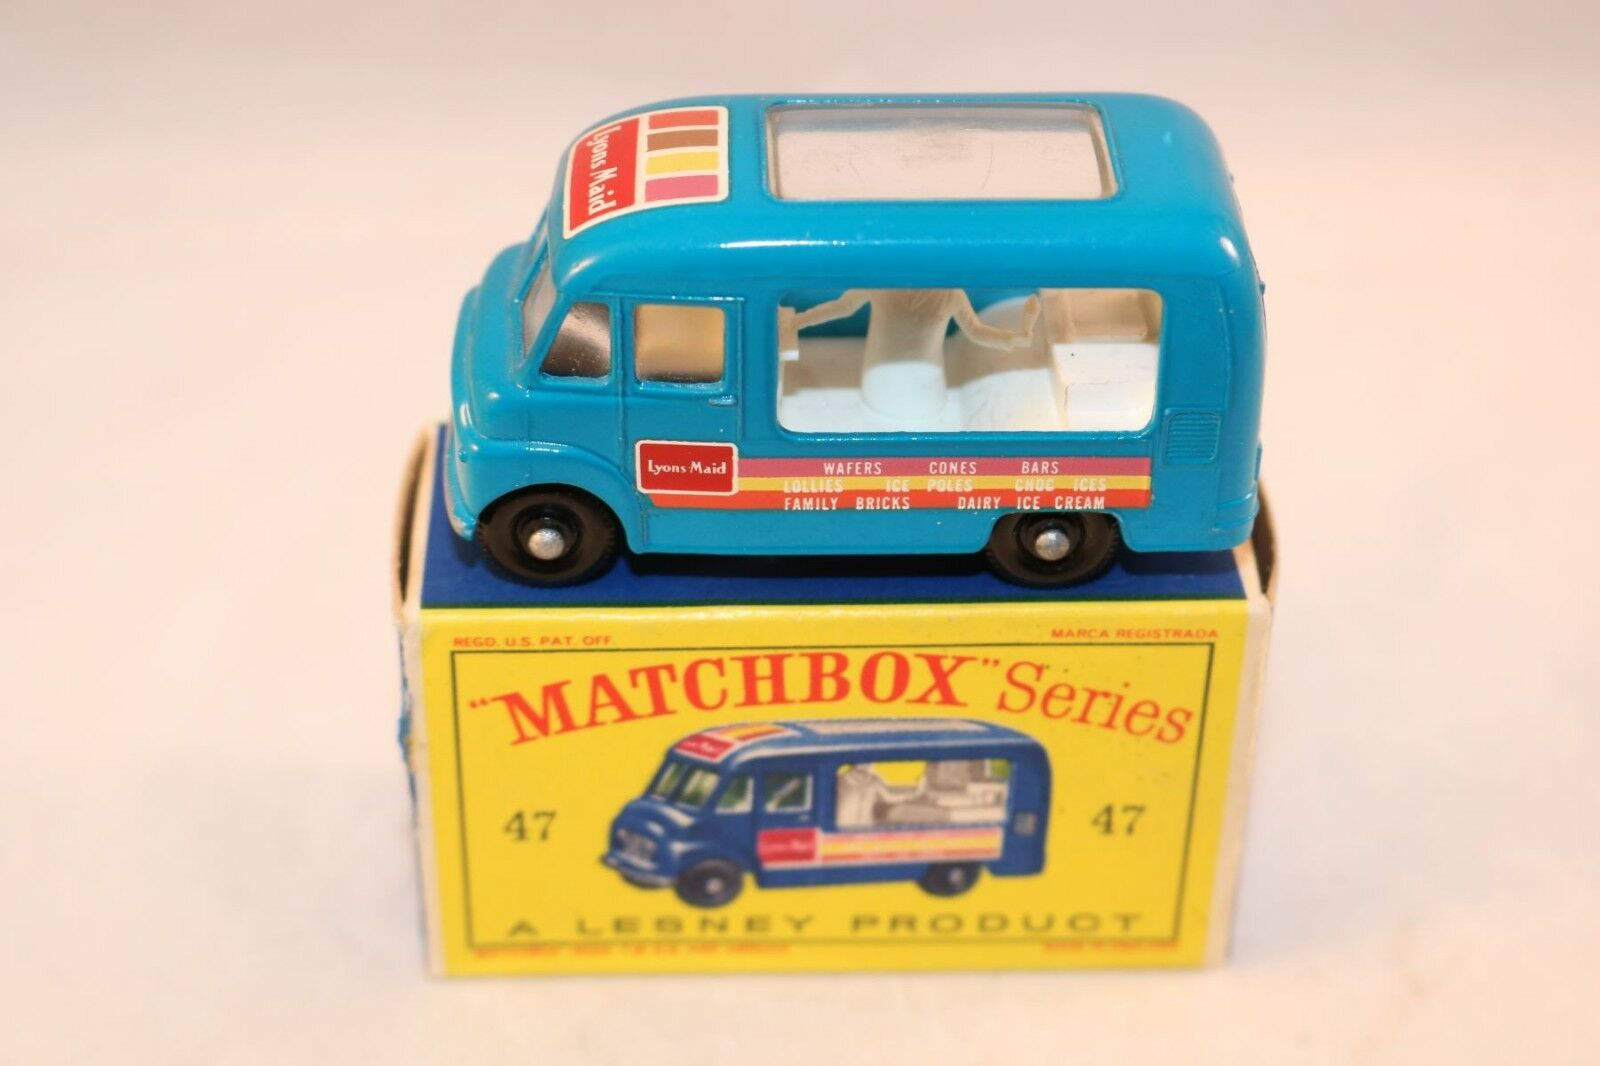 Matchbox Lesney No 47 Lyons Maid Ice-cream mobile shop BPW mint in box